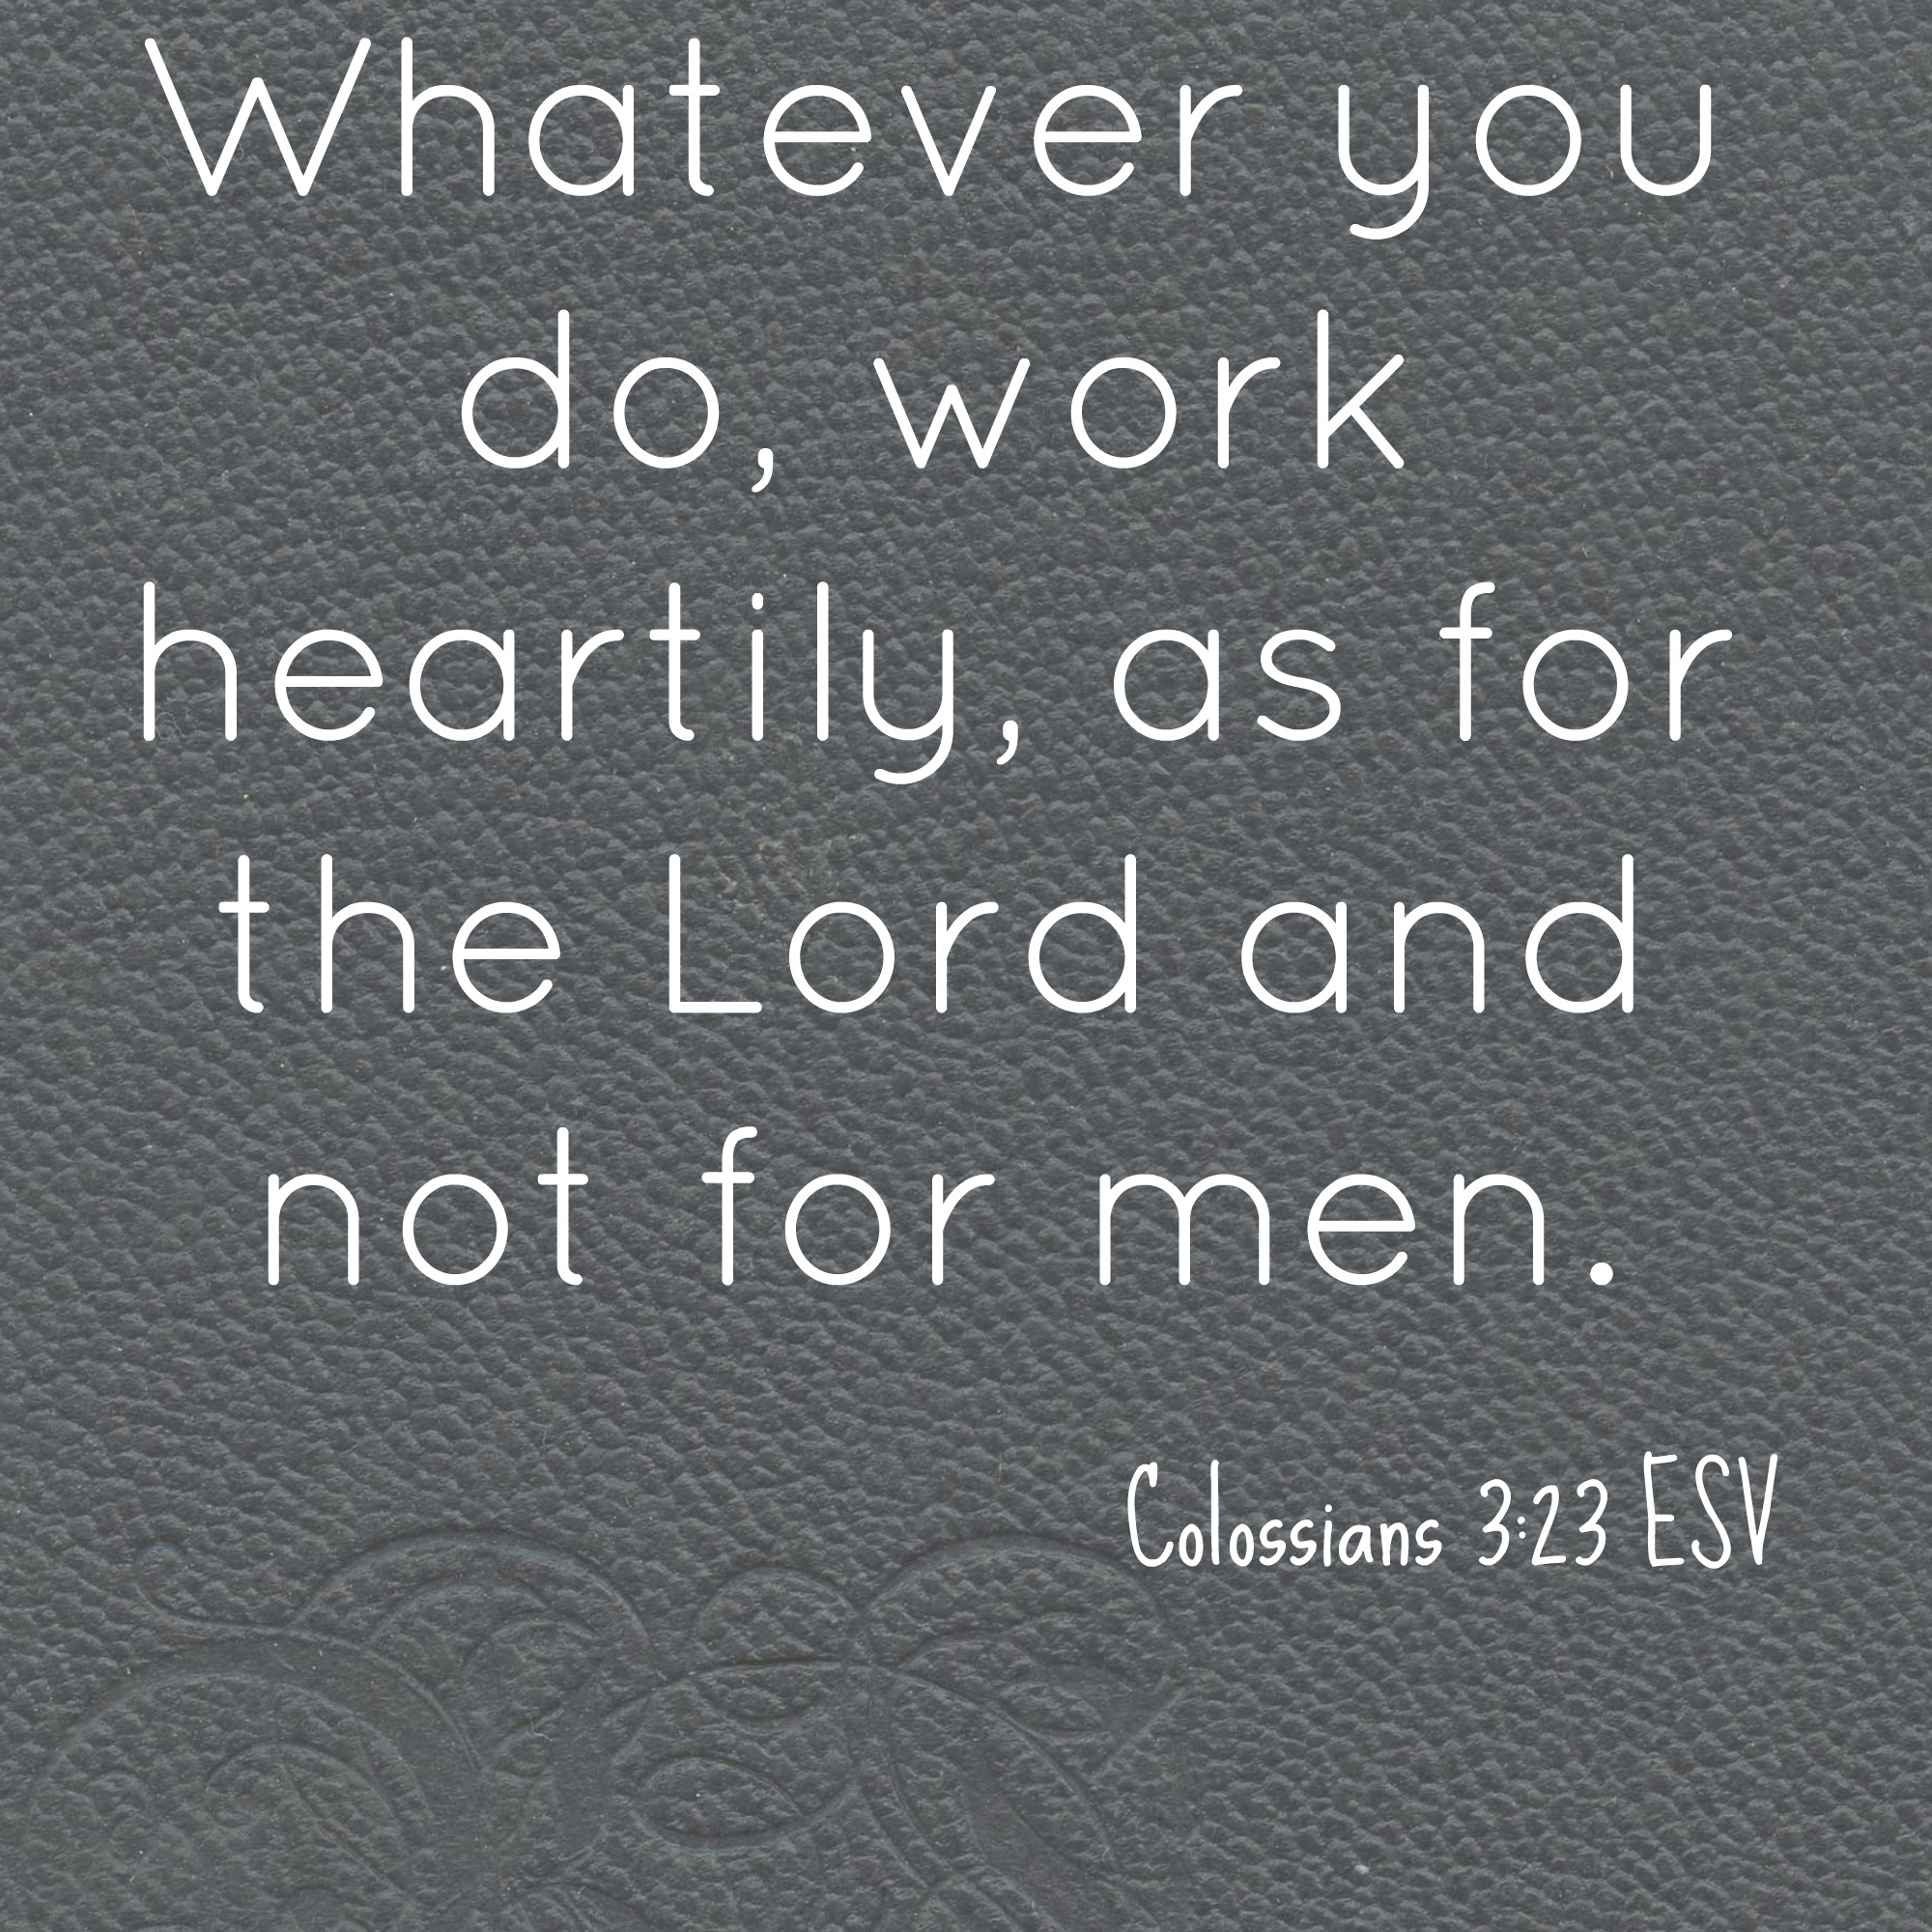 Blogging Challenge Day 2 Quote Colossians 323